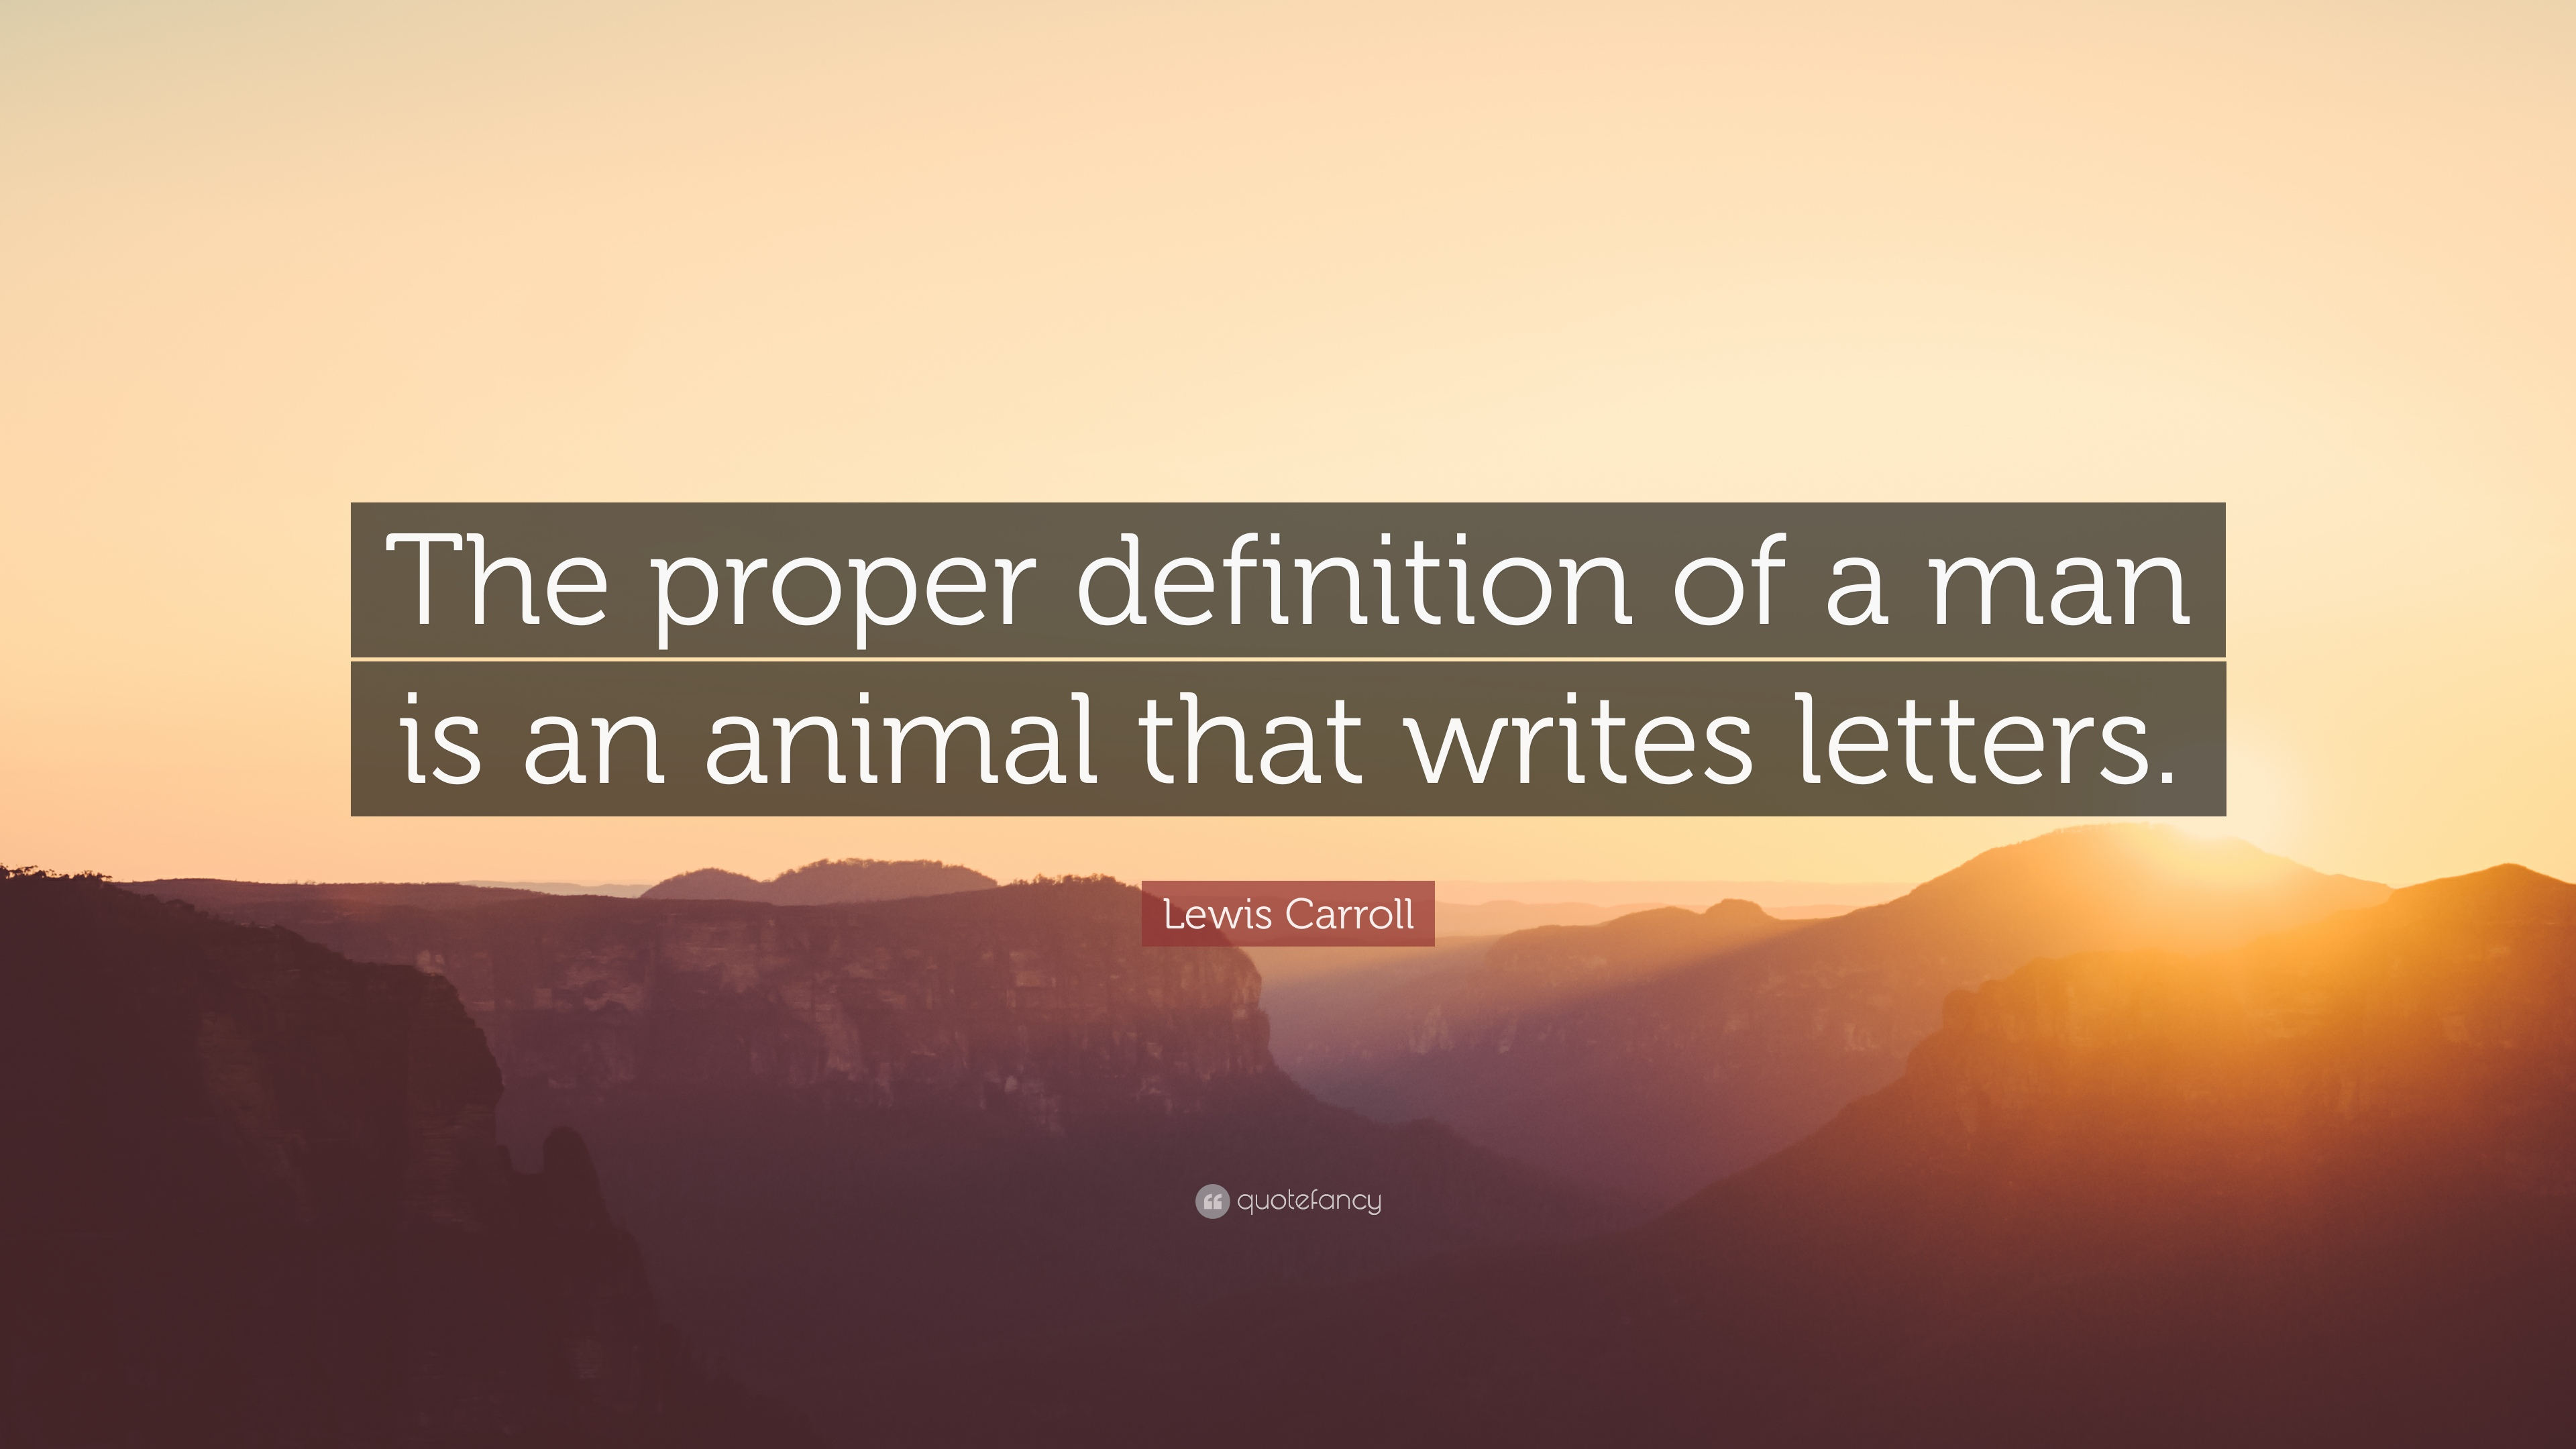 man of letters meaning lewis carroll quote the proper definition of a is an 39575